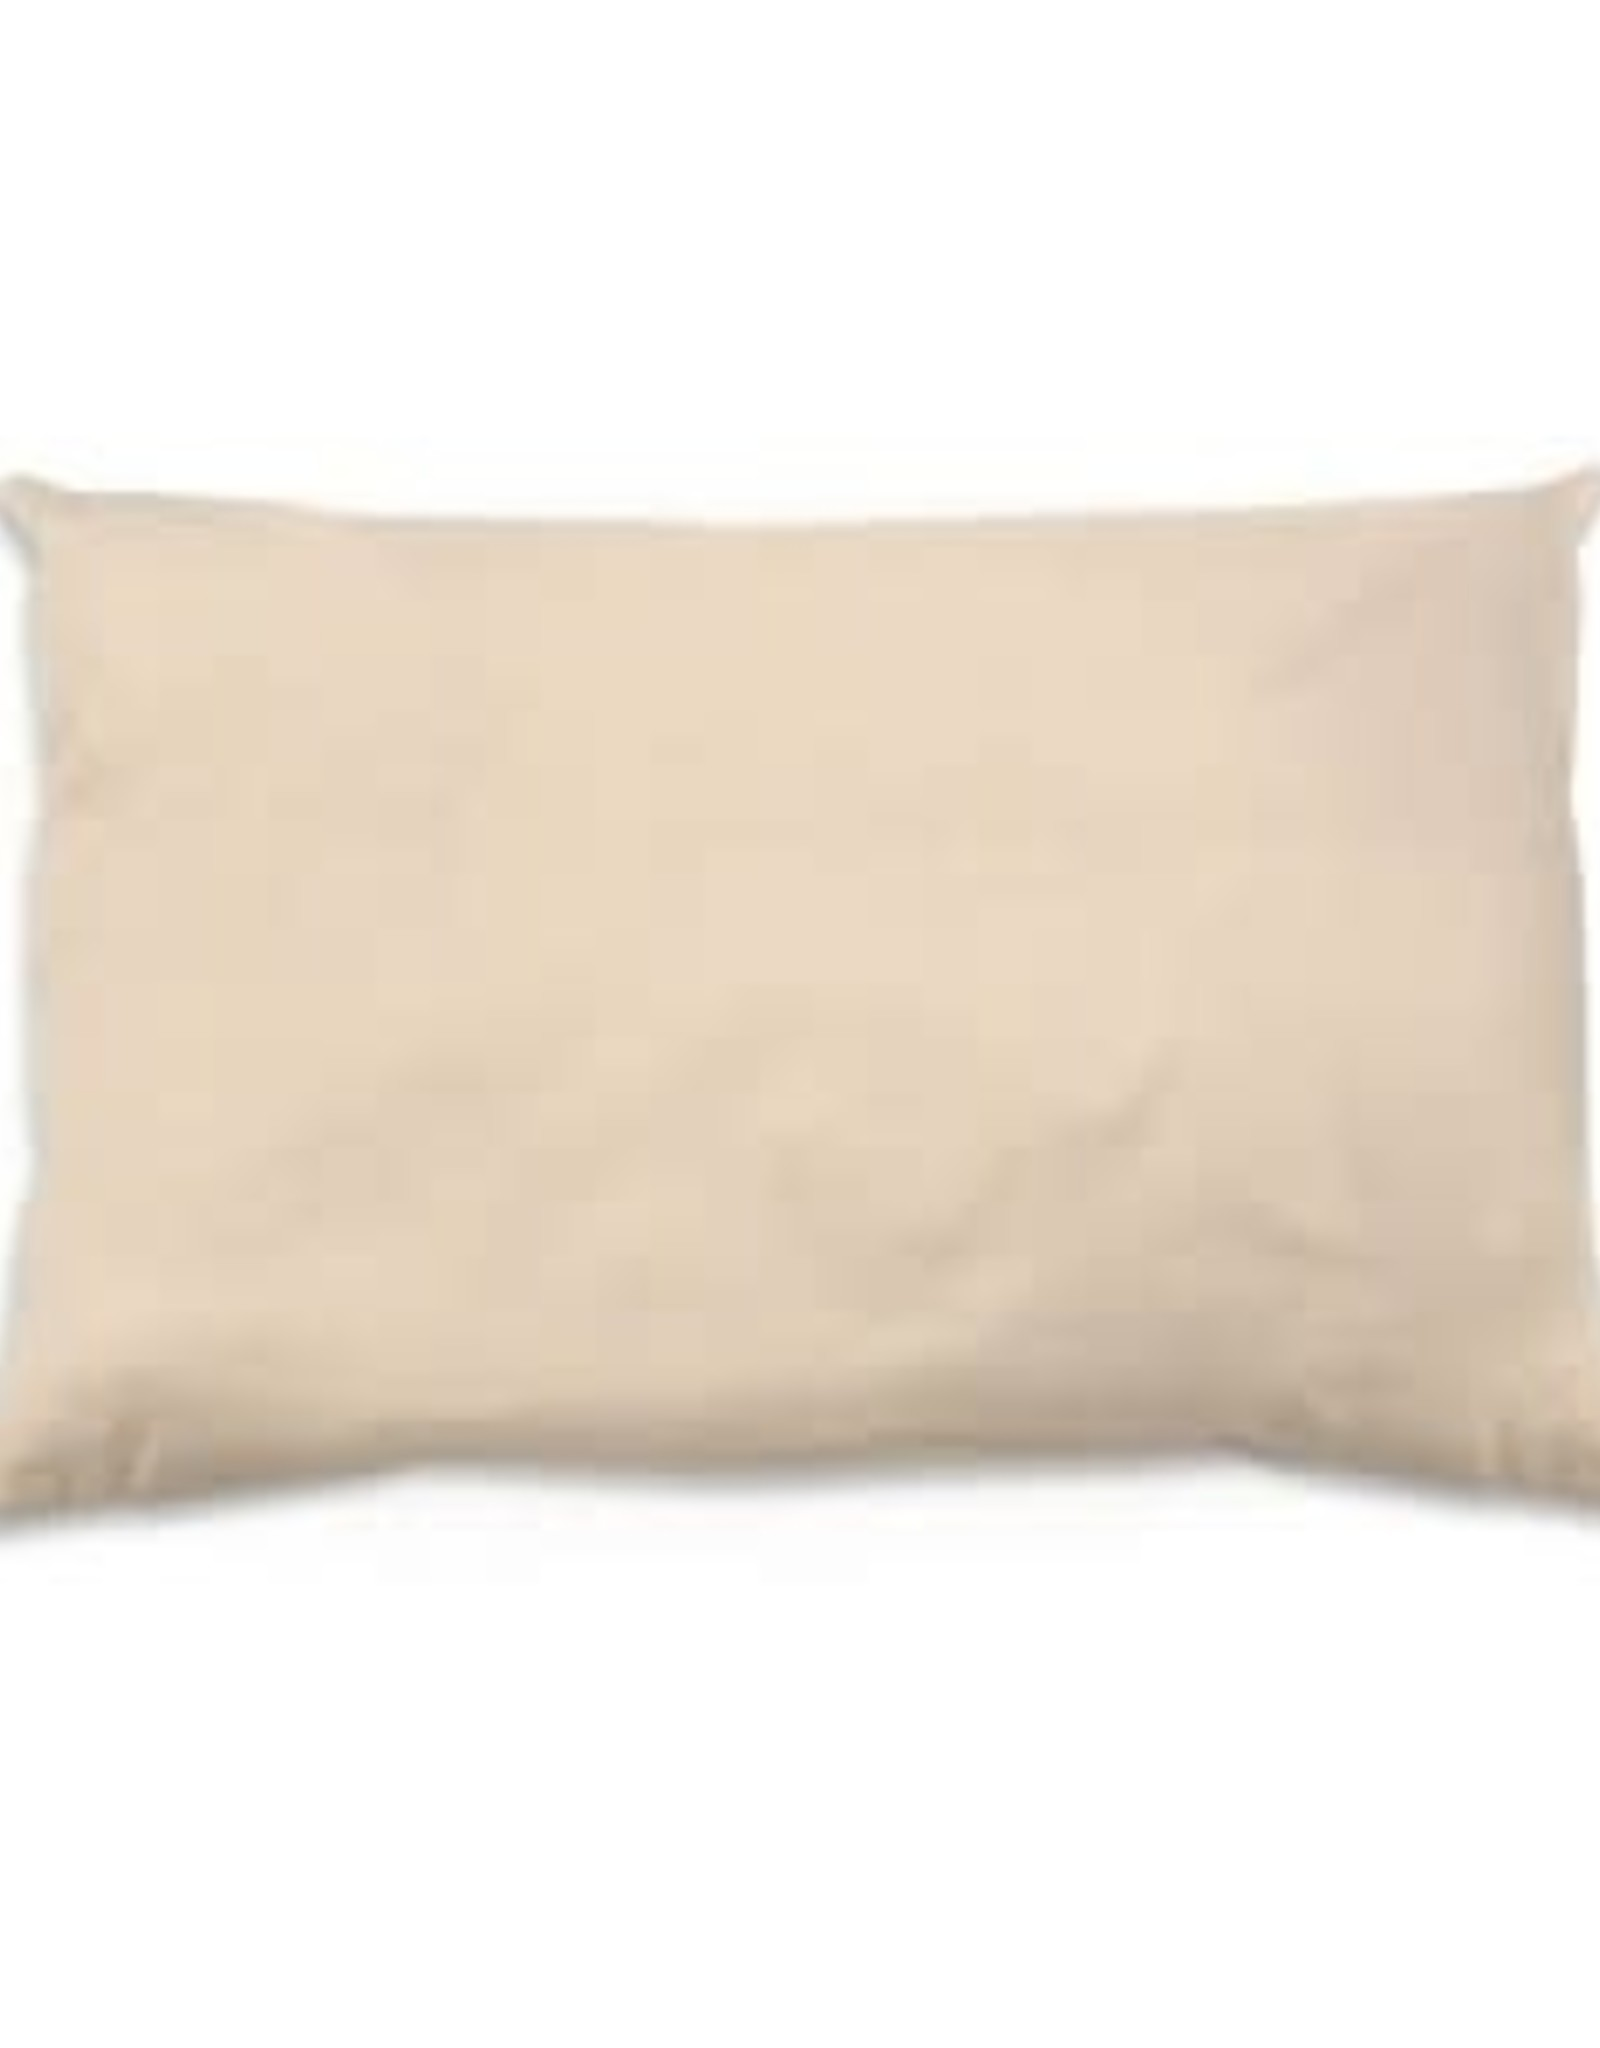 Naturepedic Naturepedic - Organic Cotton Pillow - PLA Standard size 20 in x 26in Low Fill